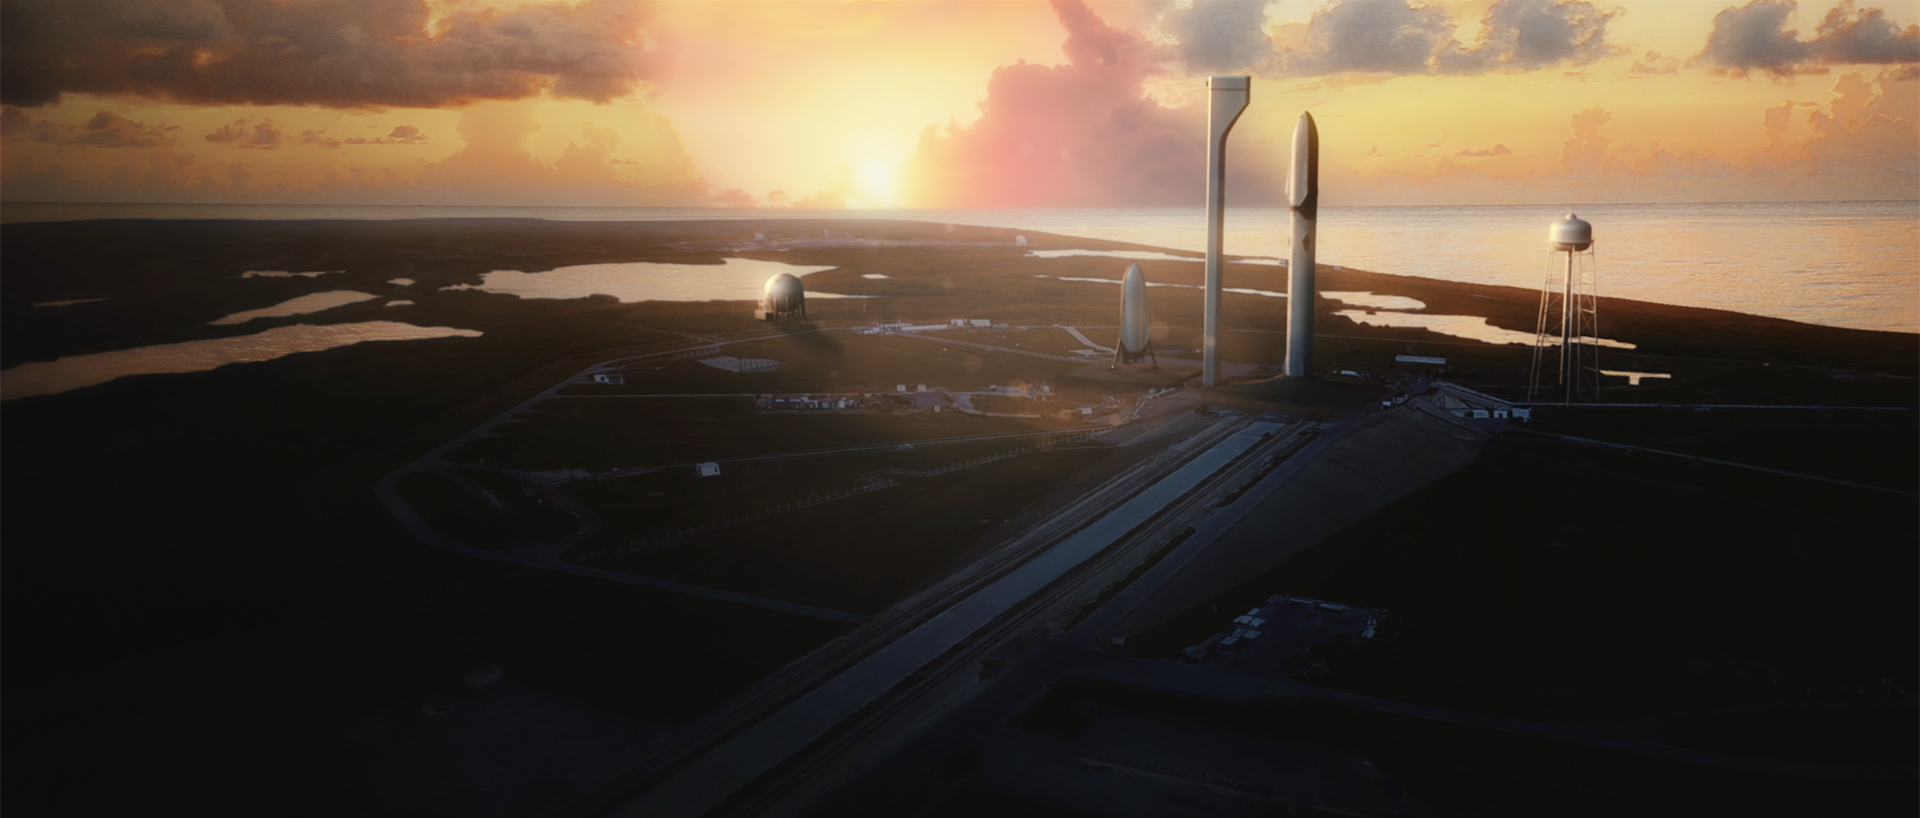 spacex transportation -#main